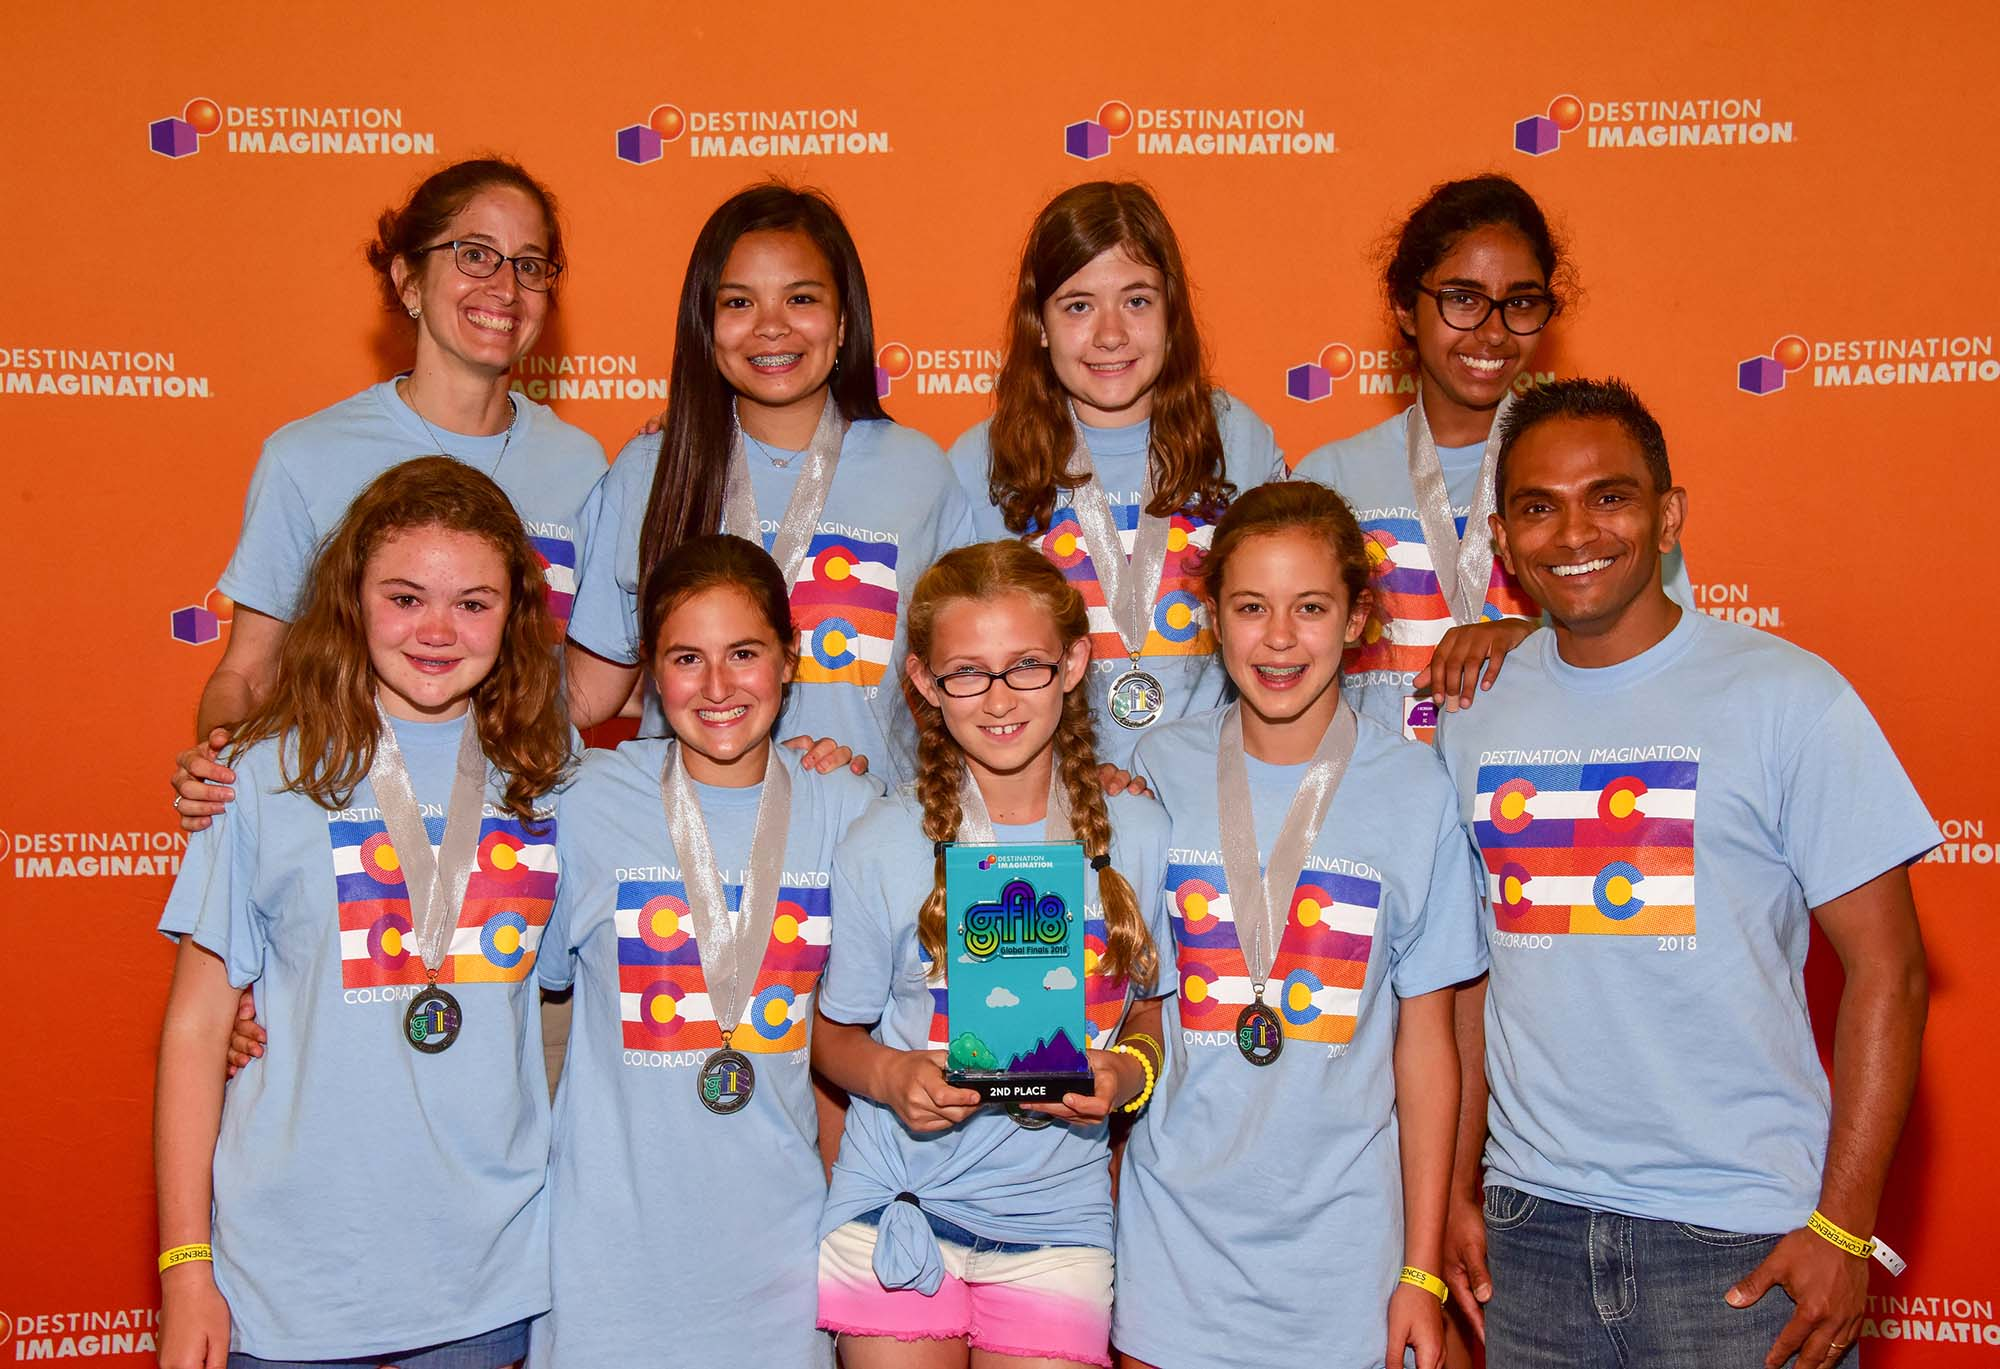 St. Mary's Academy Destination Imagination Team Takes 2nd Place at DI Global Finals